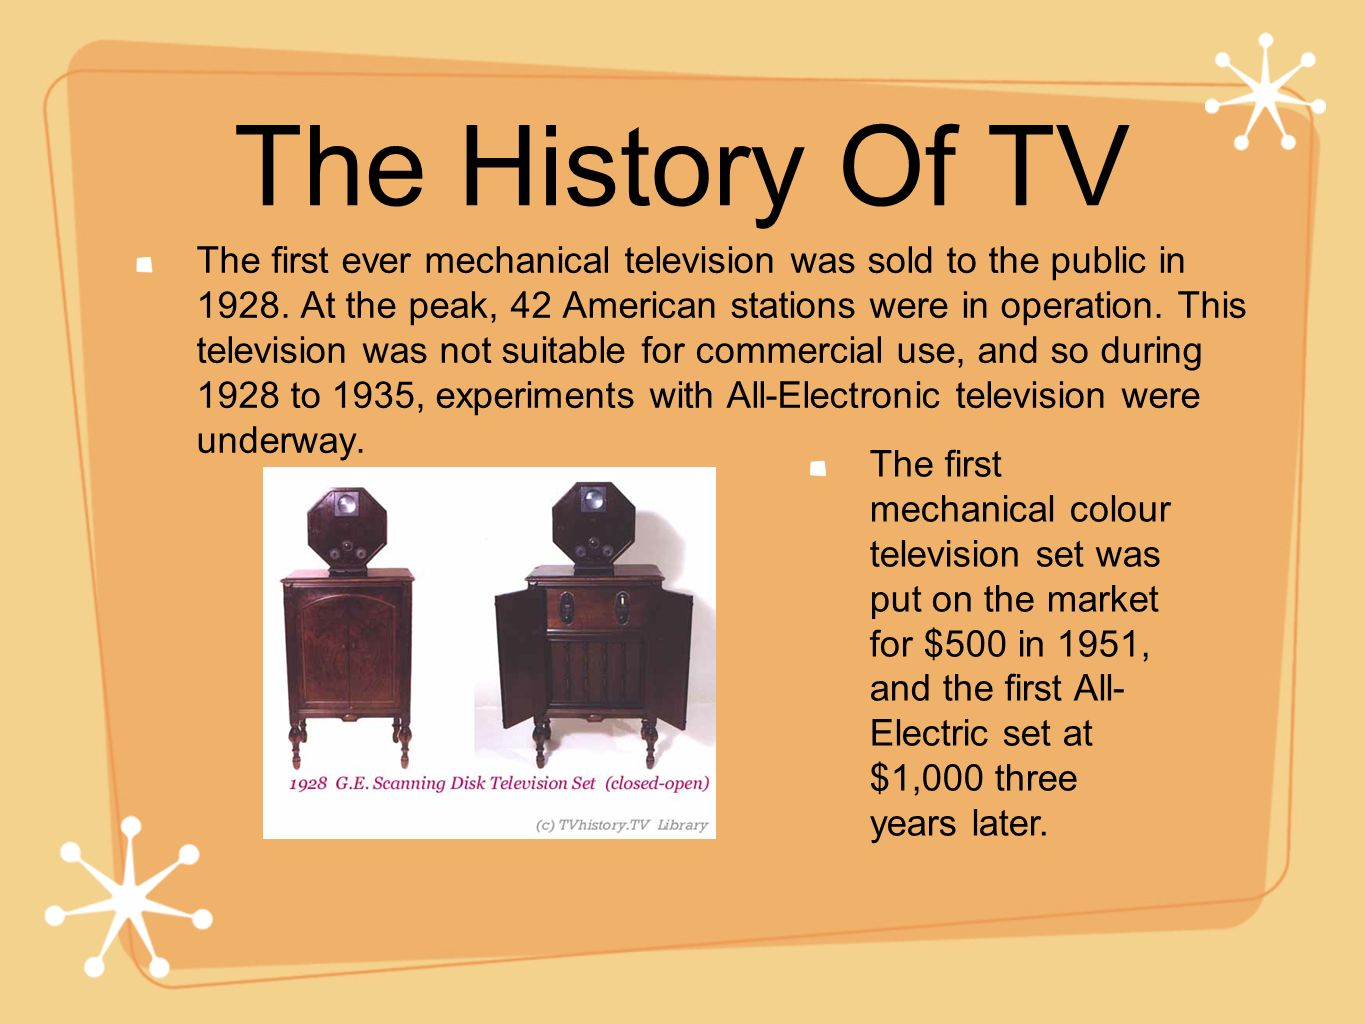 The History Of TV The first ever mechanical television was sold to the public in 1928. At the peak, 42 American stations were in operation. This telev